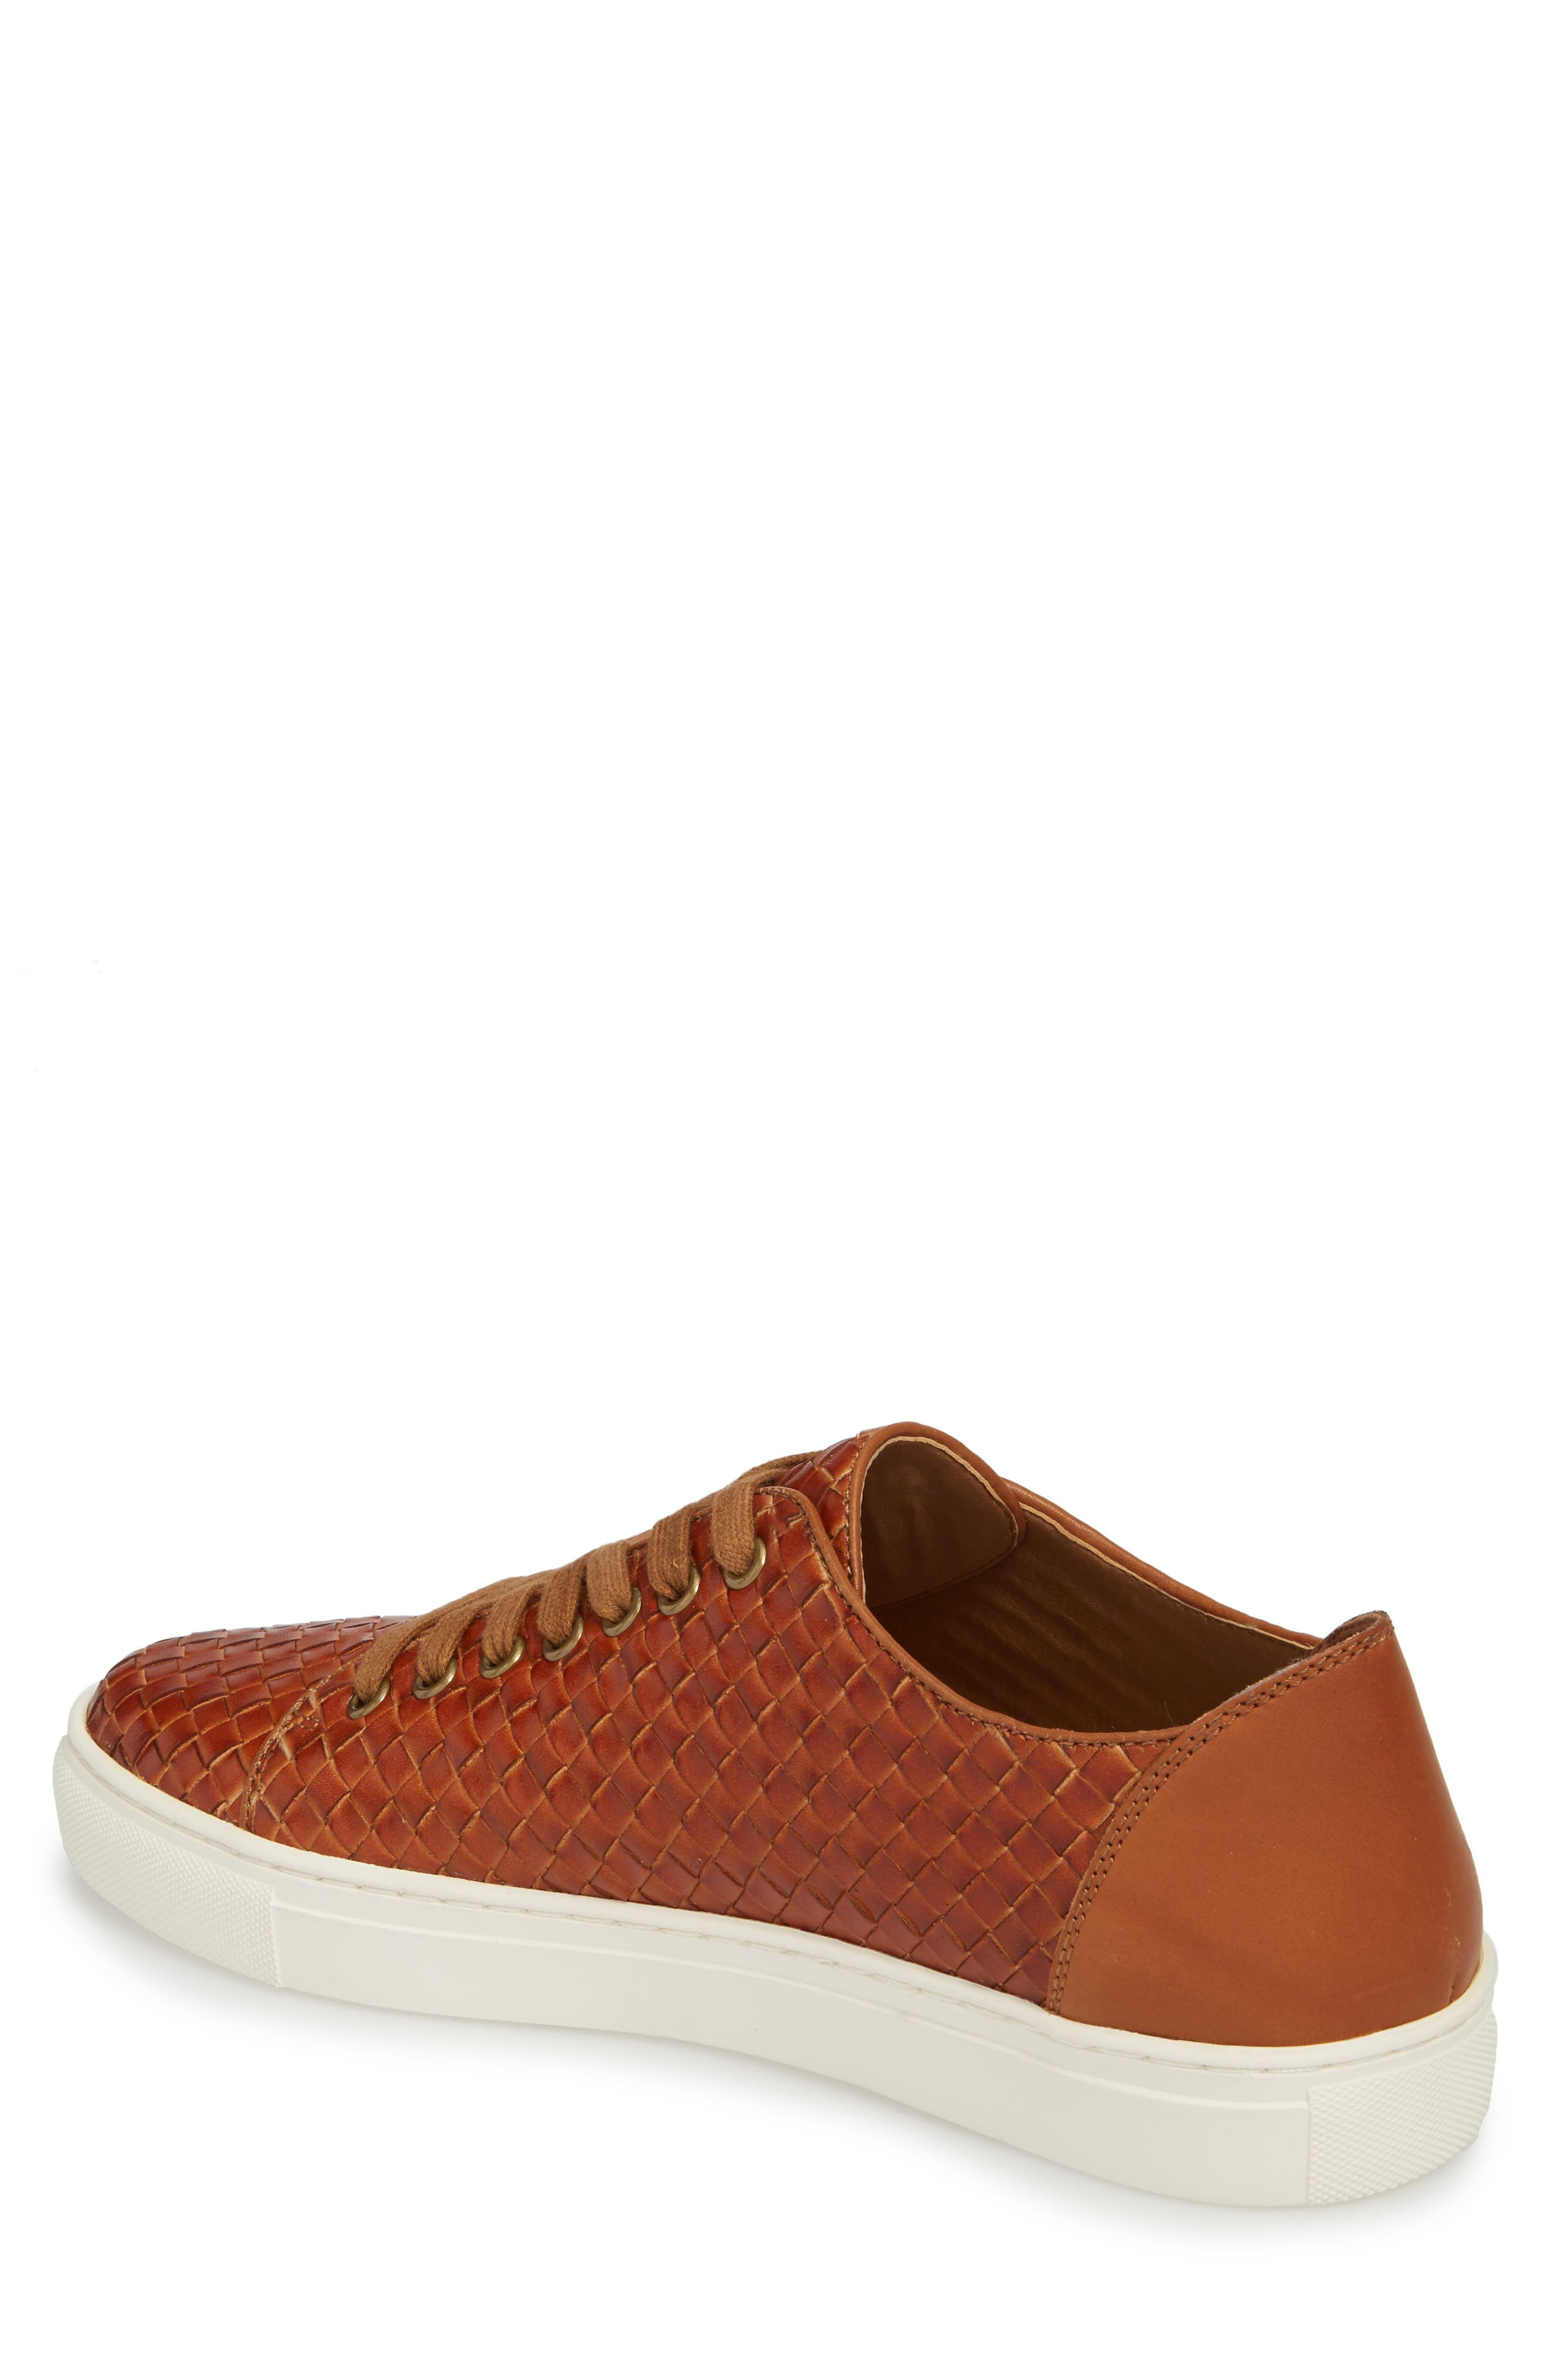 Alto Woven Low Top Sneaker,                             Alternate thumbnail 2, color,                             Saddle Leather